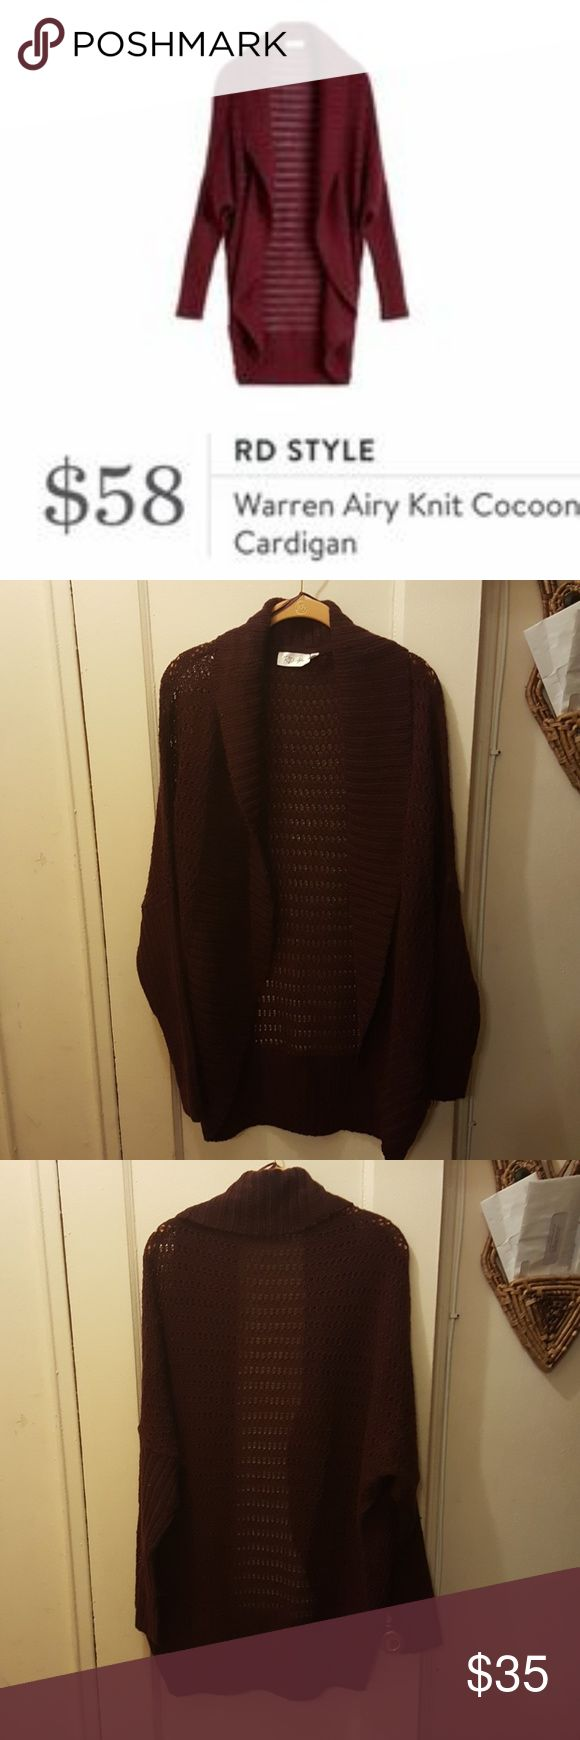 Maroon cocoon cardigan from rd style